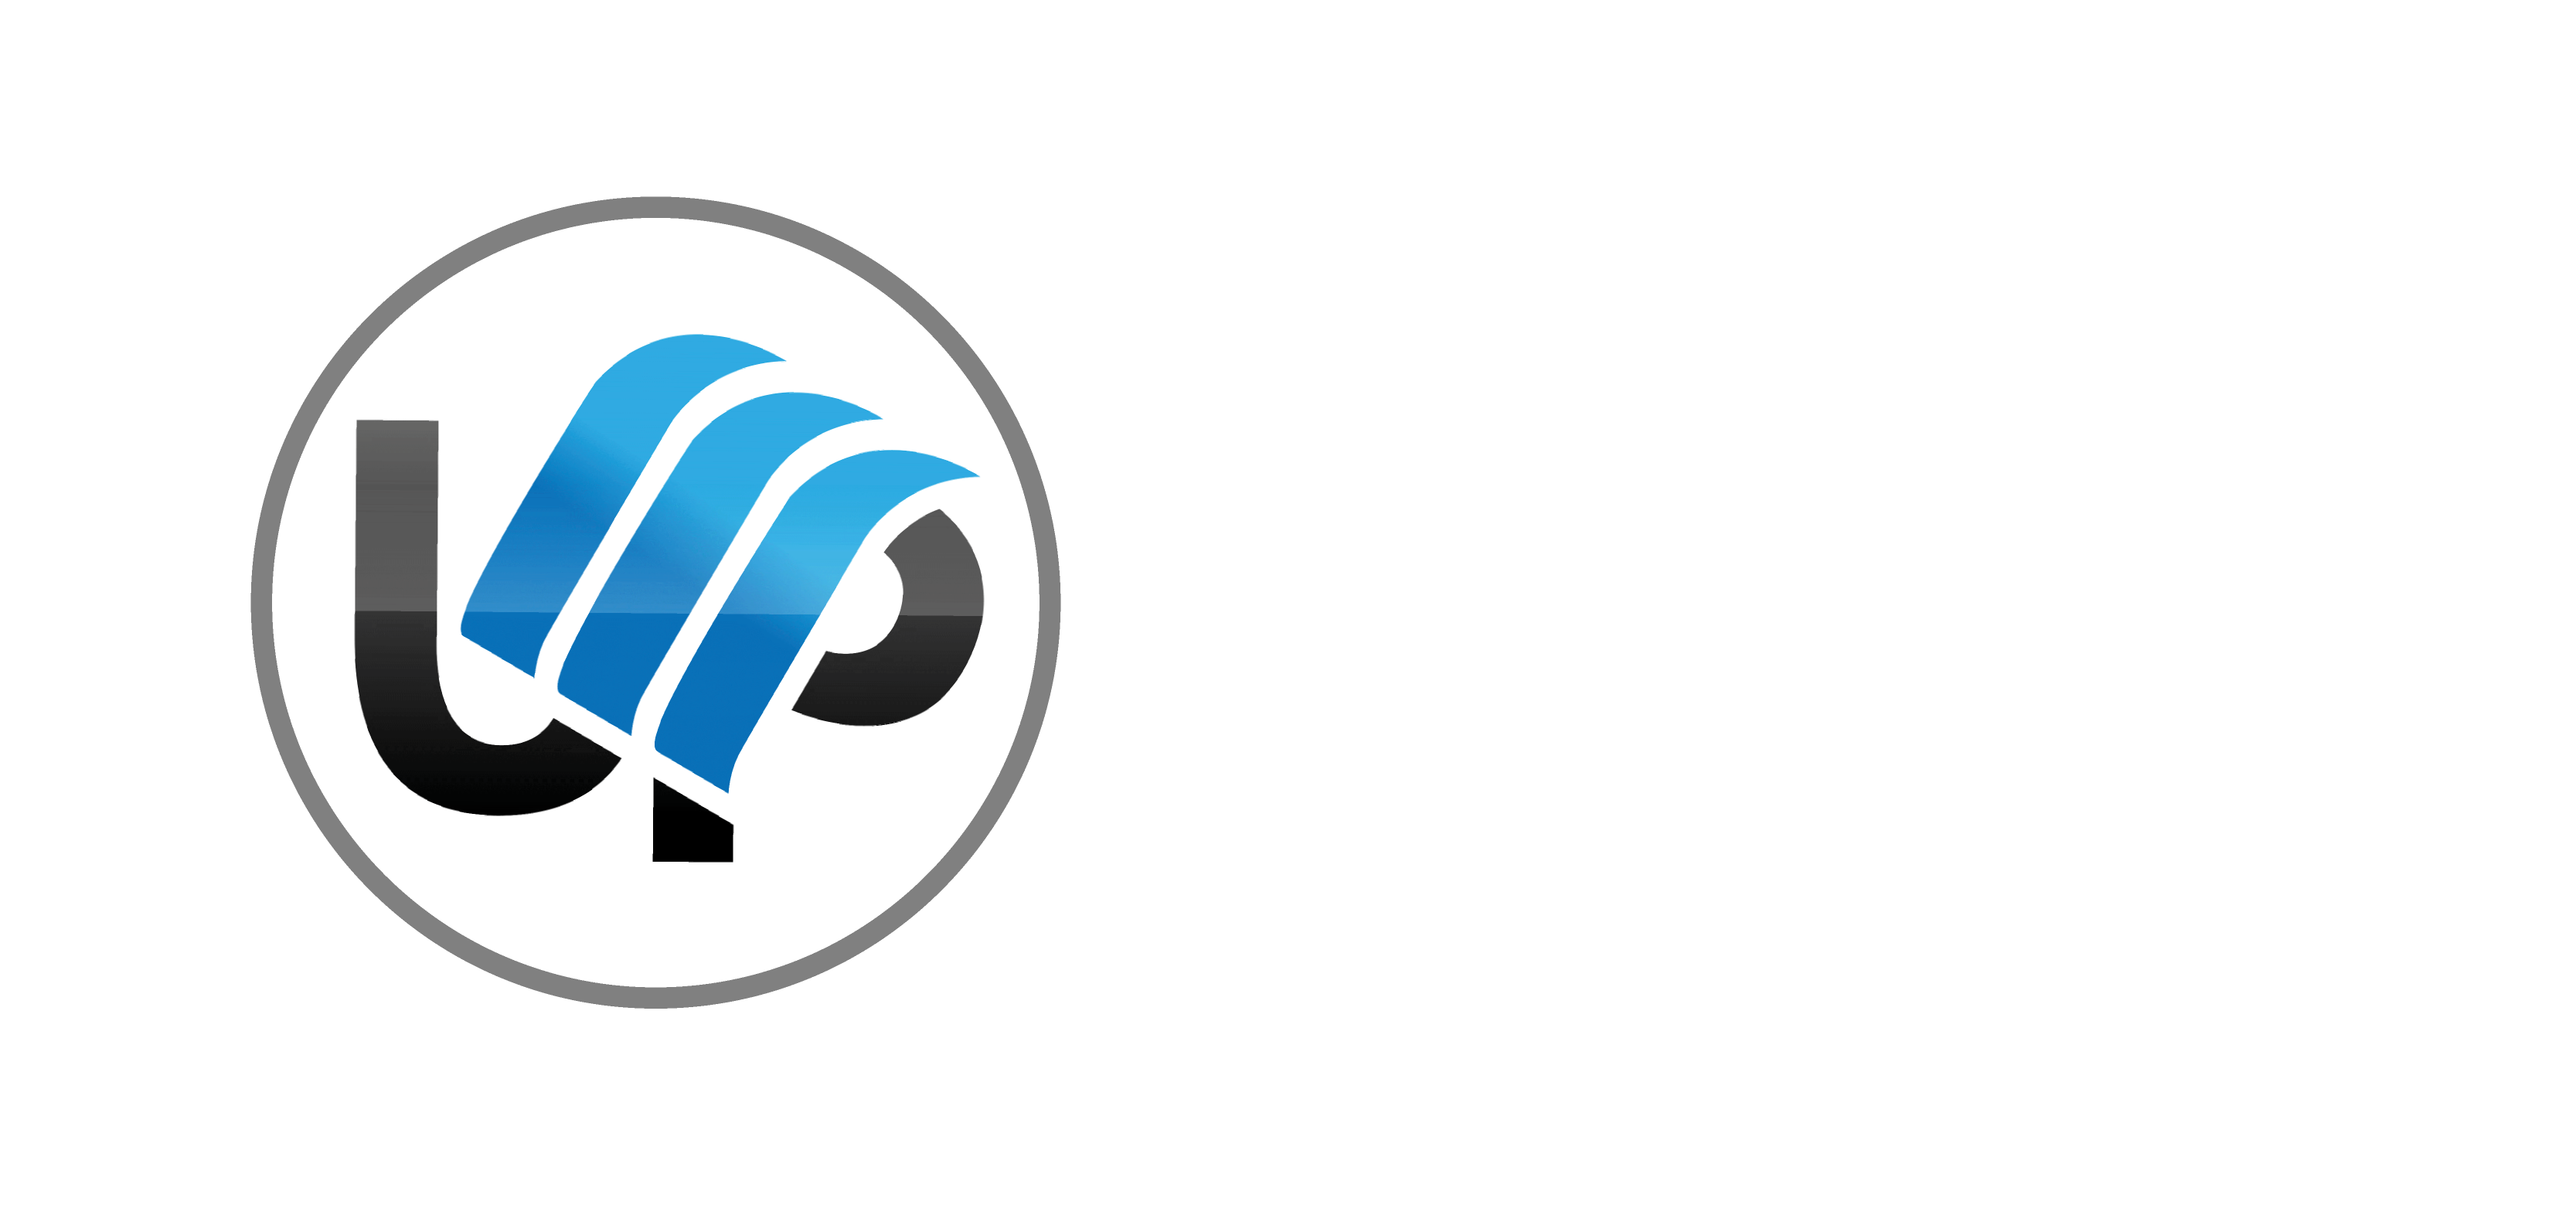 UNIVERSIDAD MULTITÉCNICA PROFESIONAL